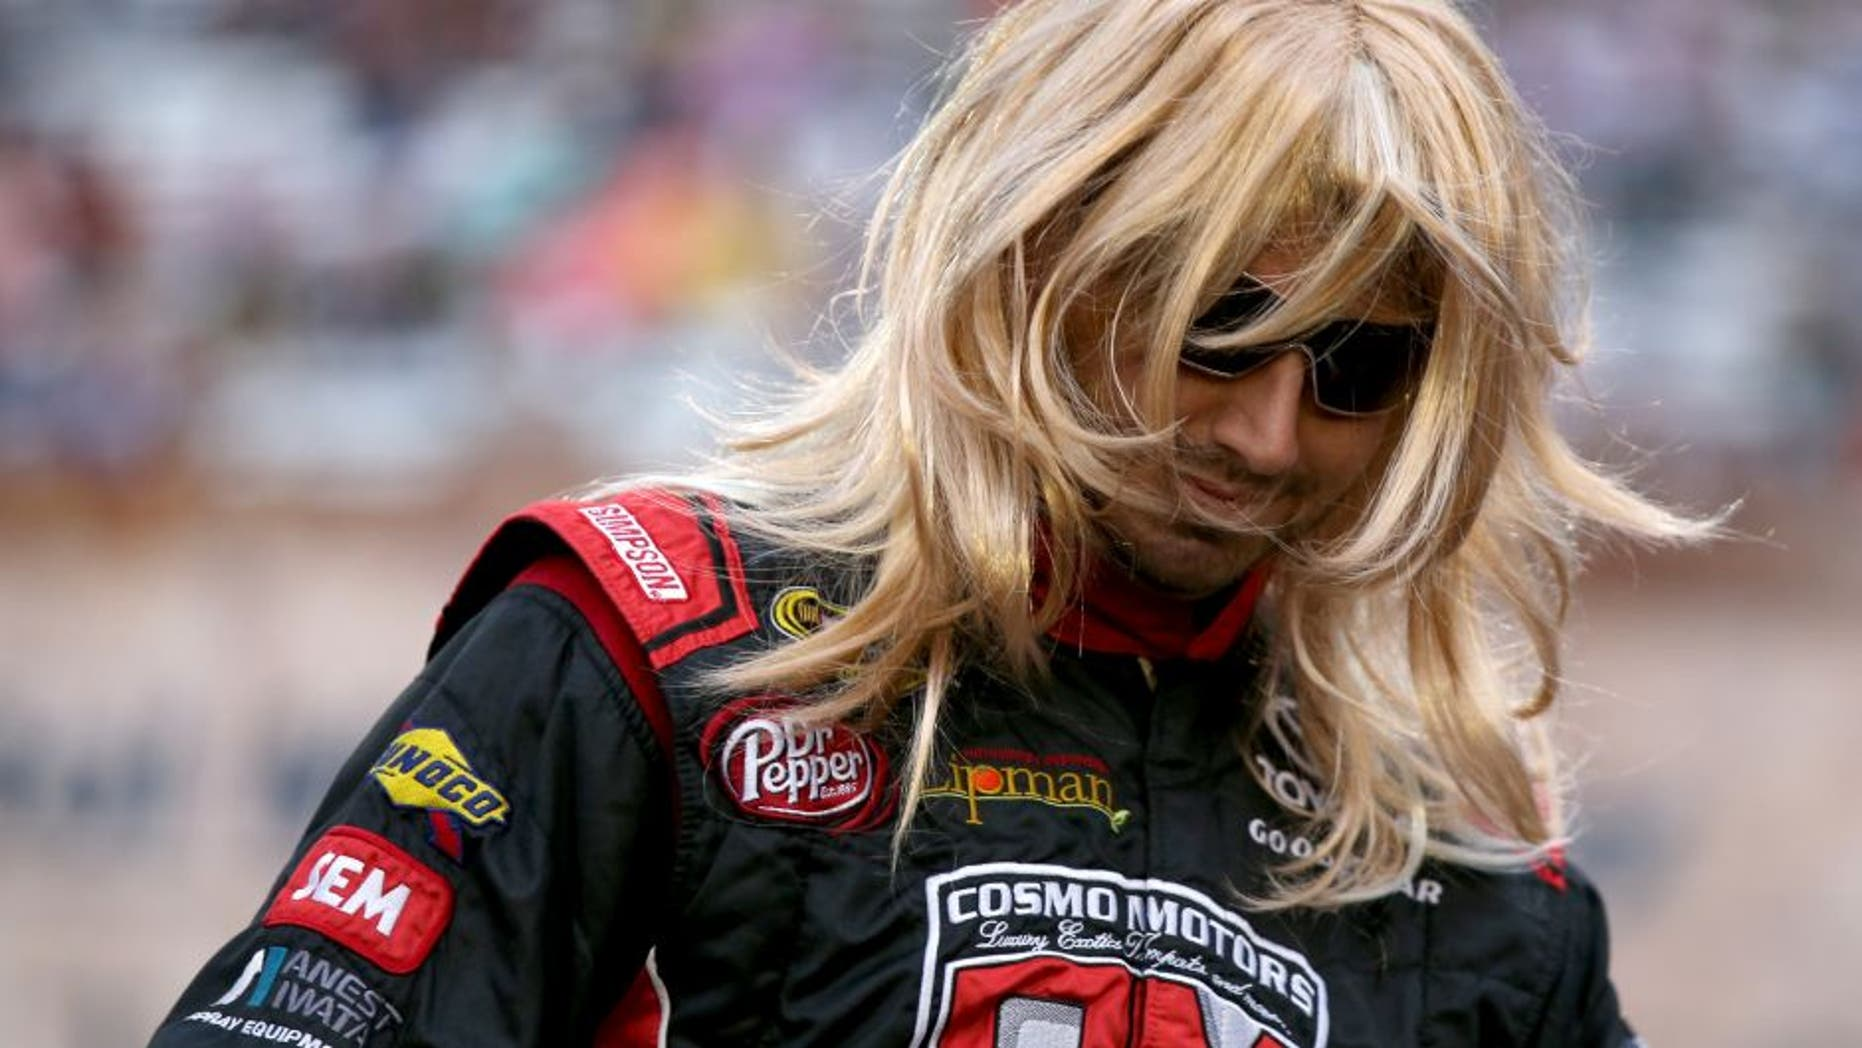 BRISTOL, TN - AUGUST 20: Matt DiBenedetto, driver of the #83 Cosmo Motors Toyota, is introduced in a wig prior to the NASCAR Sprint Cup Series Bass Pro Shops NRA Night Race at Bristol Motor Speedway on August 20, 2016 in Bristol, Tennessee. (Photo by Sean Gardner/Getty Images)